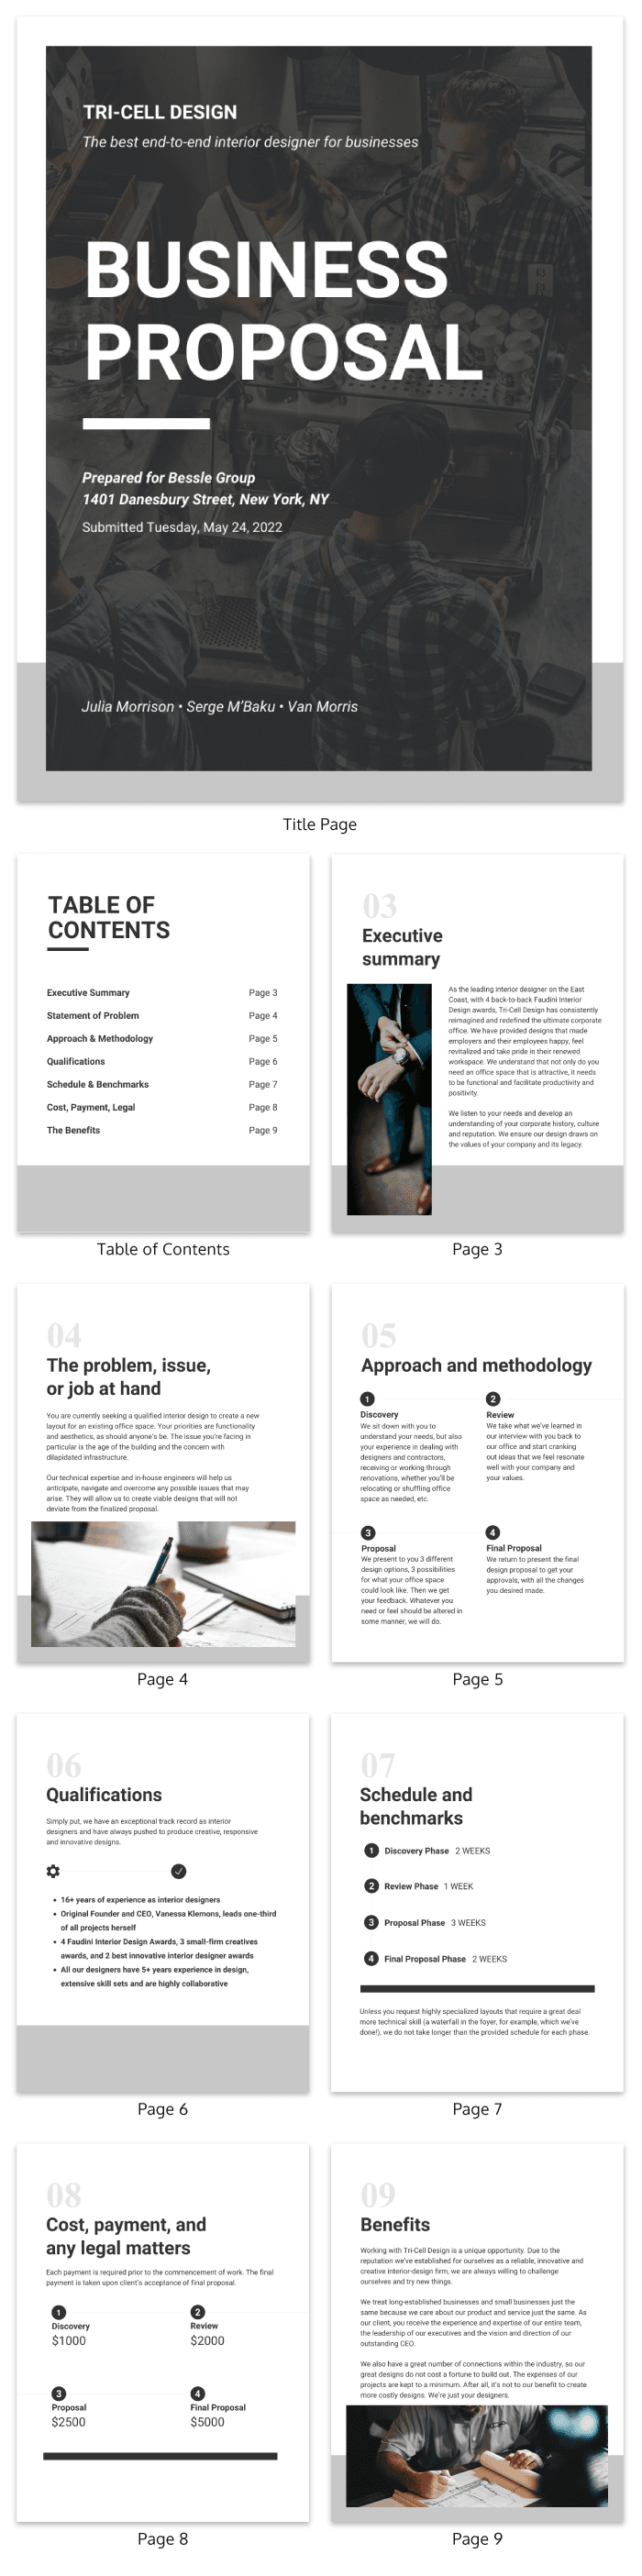 Standard Business Proposal Template Venngage